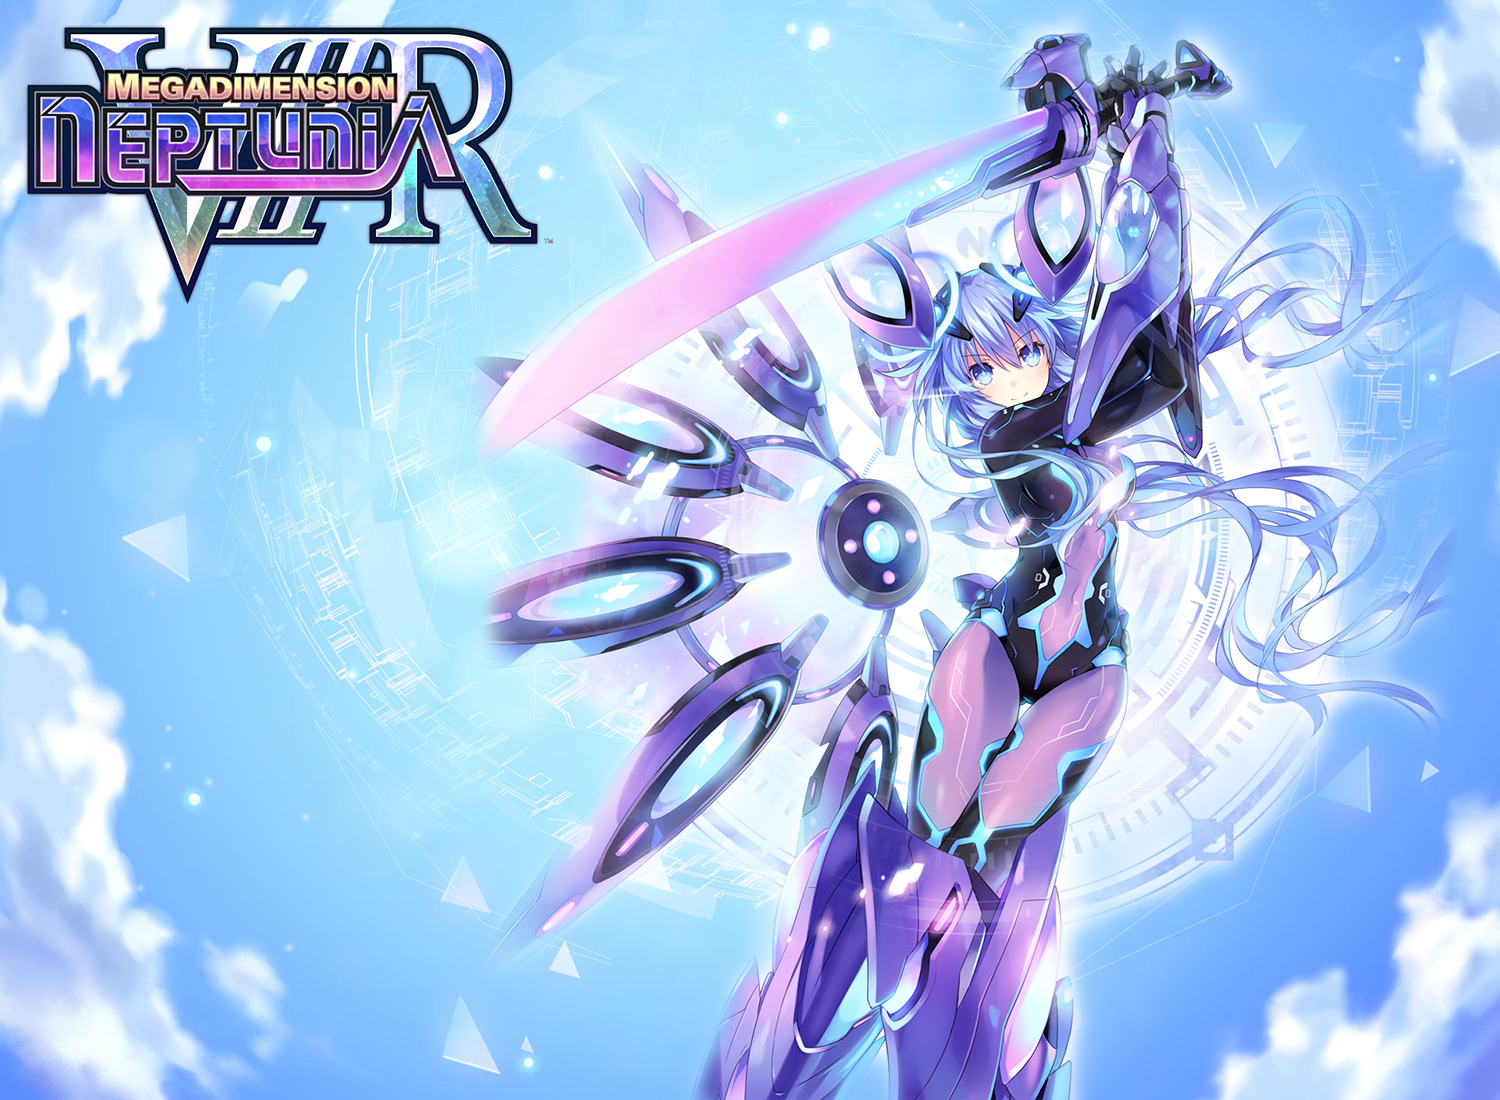 Megadimension Neptunia VIIR – 01